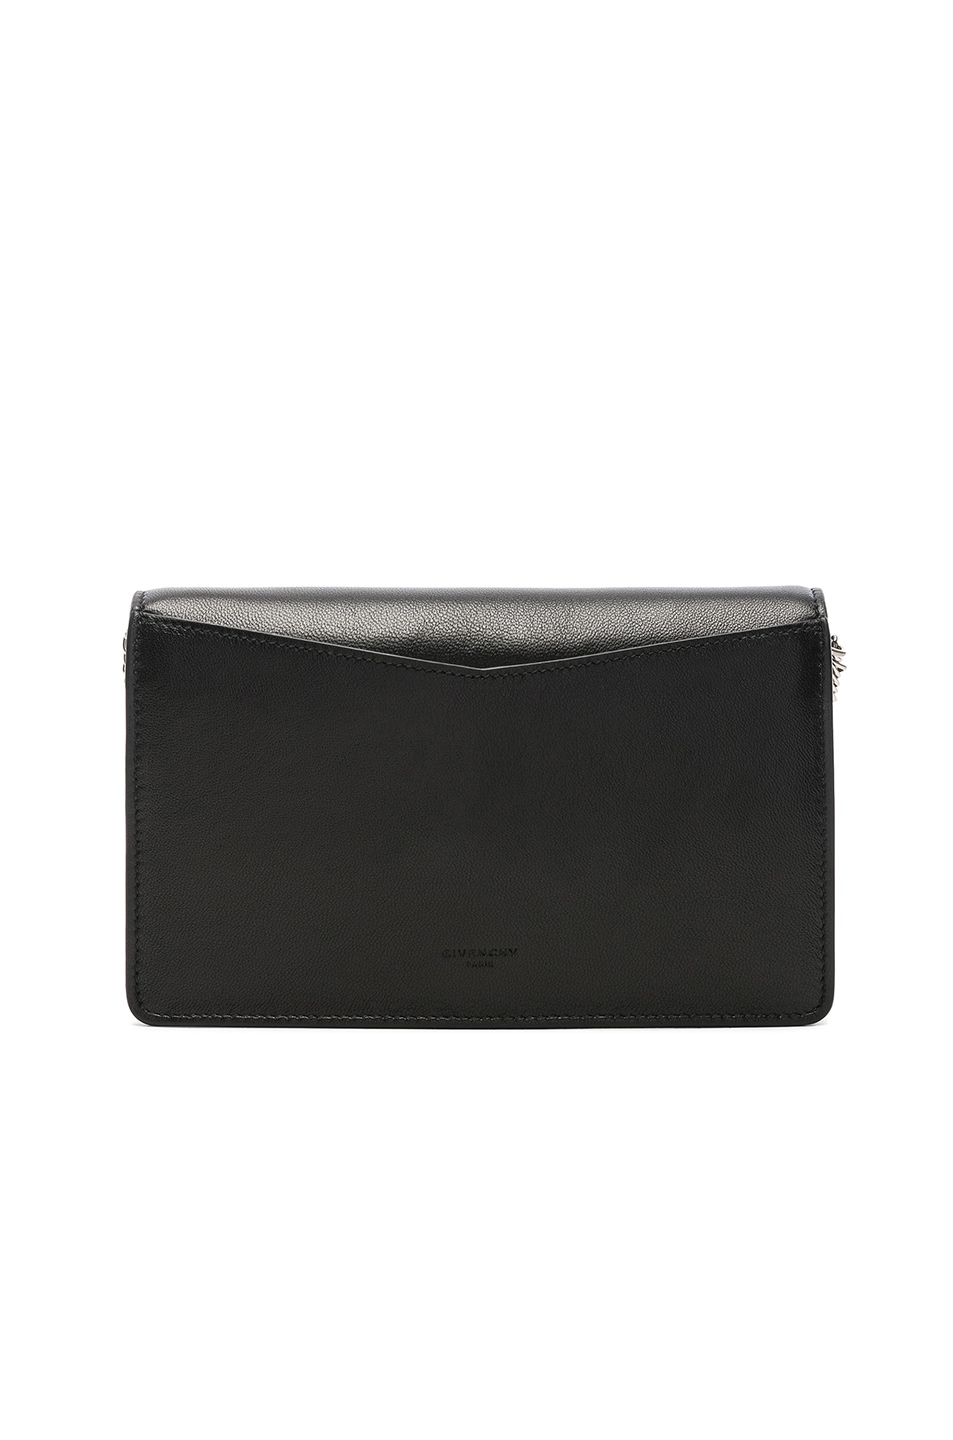 Image 3 of Givenchy Emblem Chain Wallet in Black